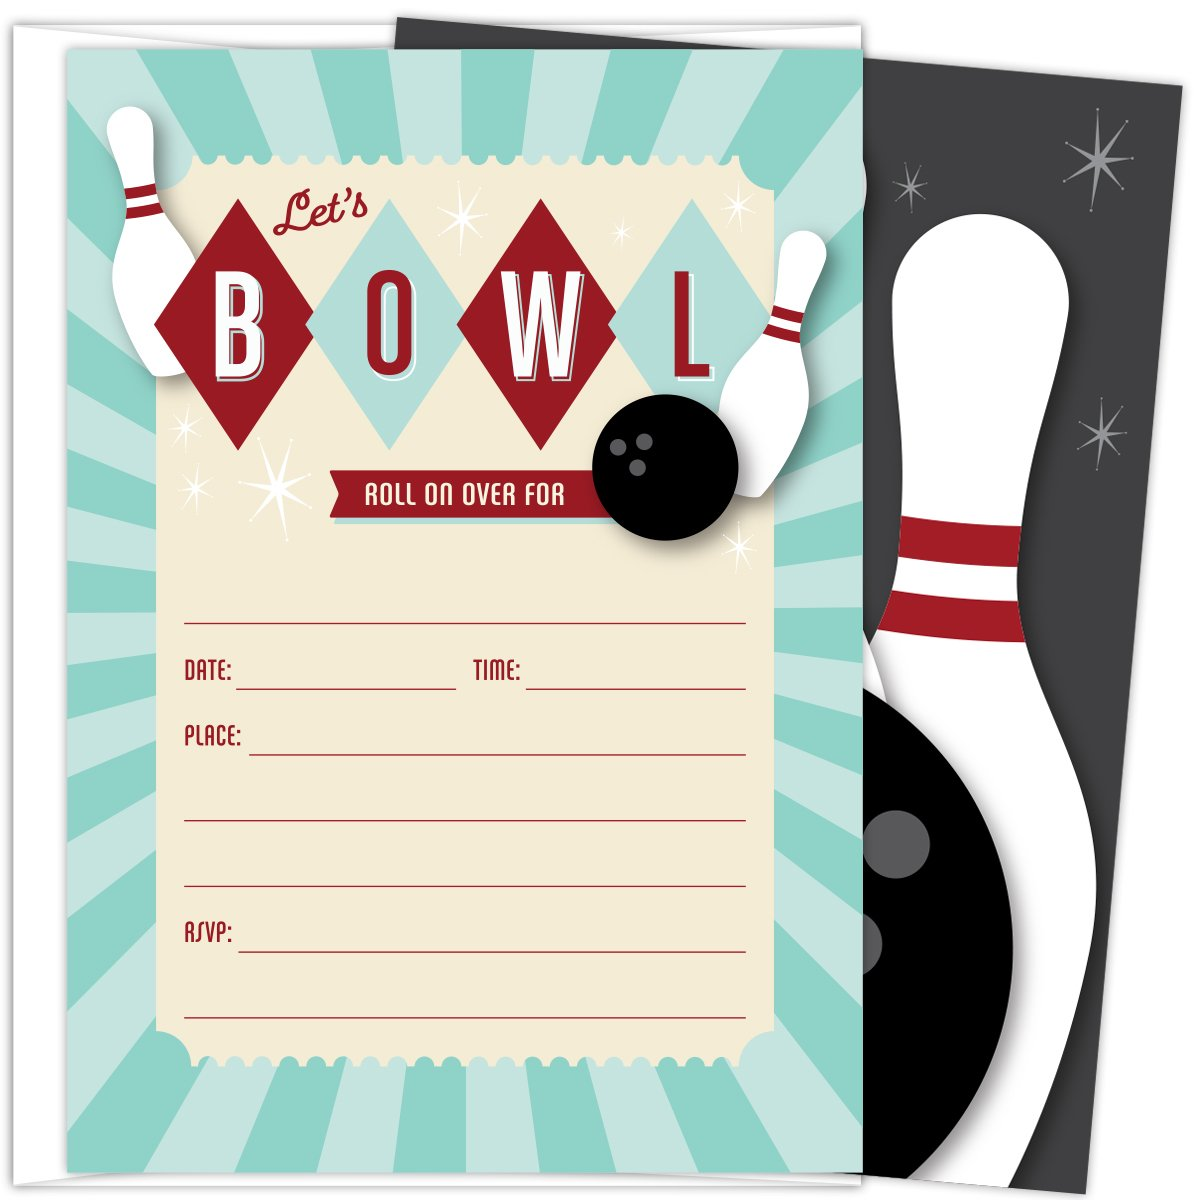 Birthday Celebration Chicago Style: Bowling Party Invitations. Set Of 25 Fill In Style Bowling